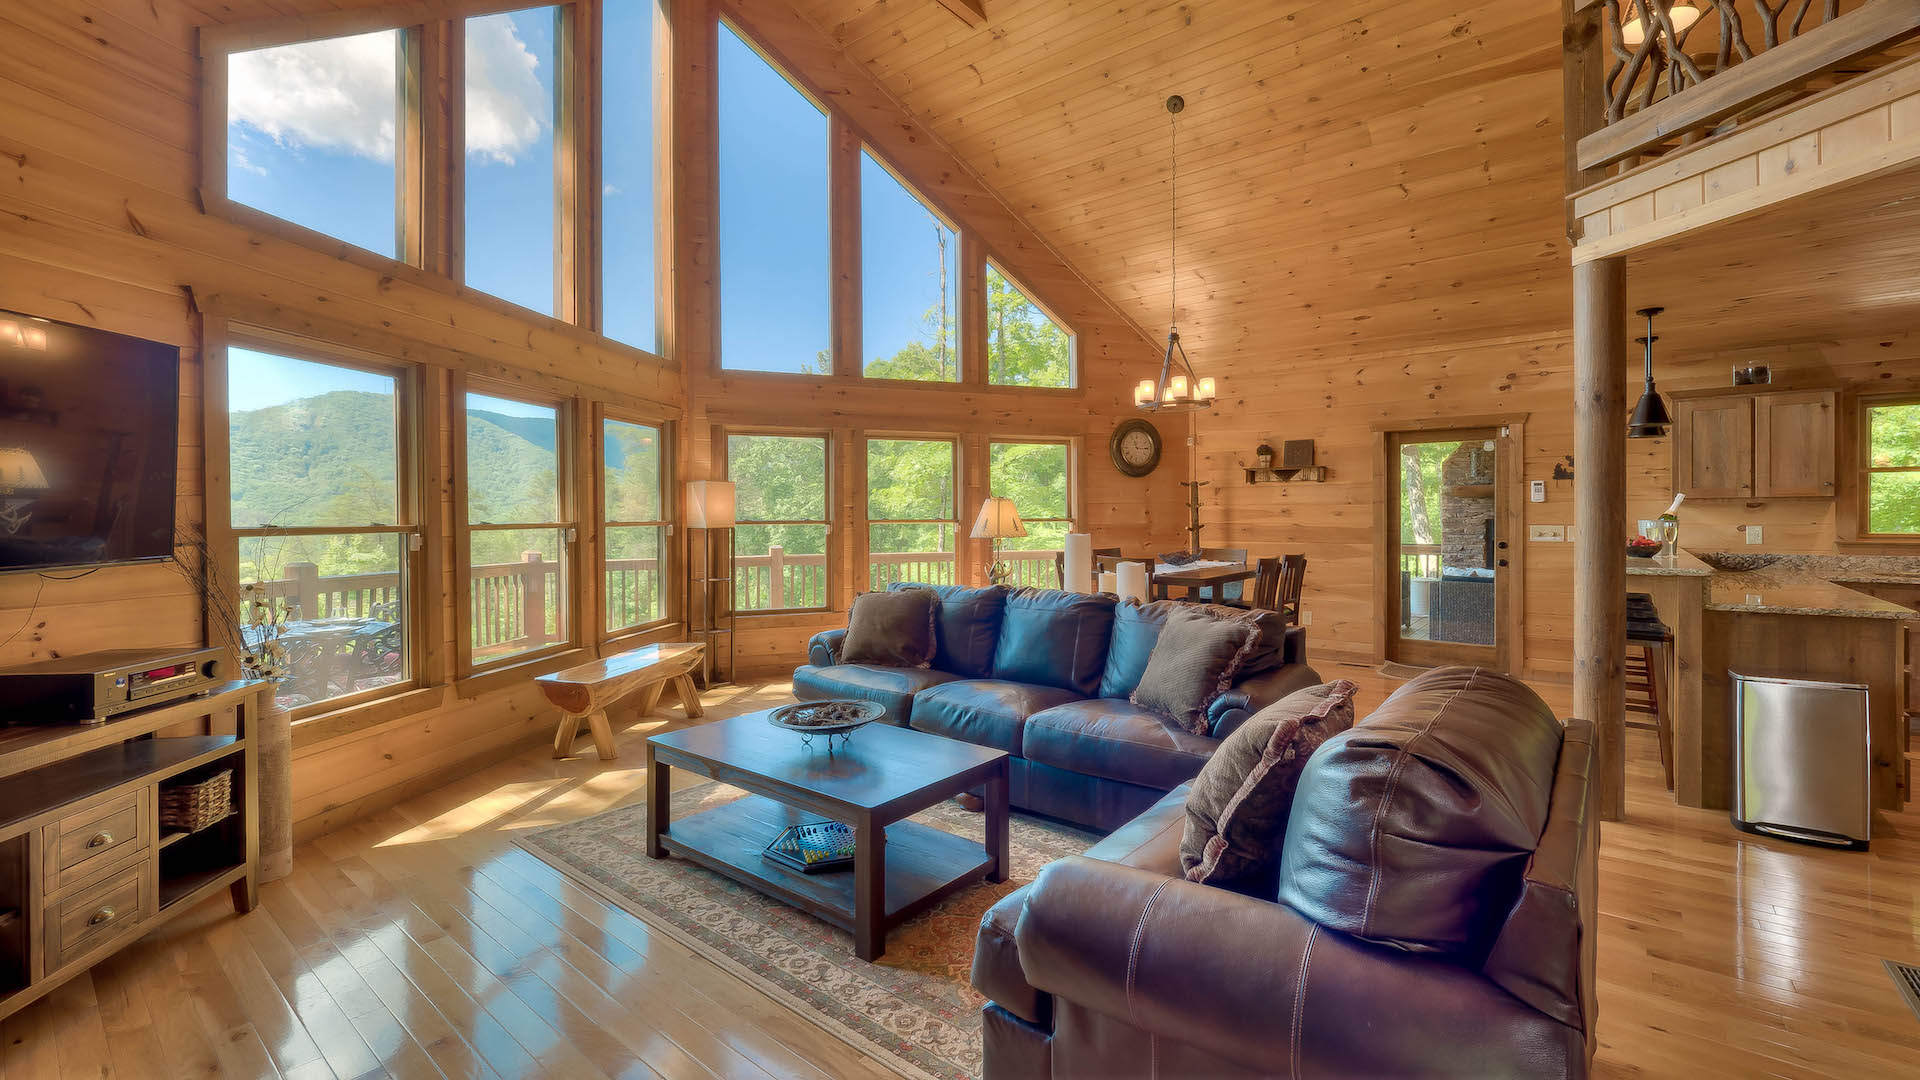 ridge cabins cabinrentalsmountains rentals blue mountain dream mountains lodge cabin views with